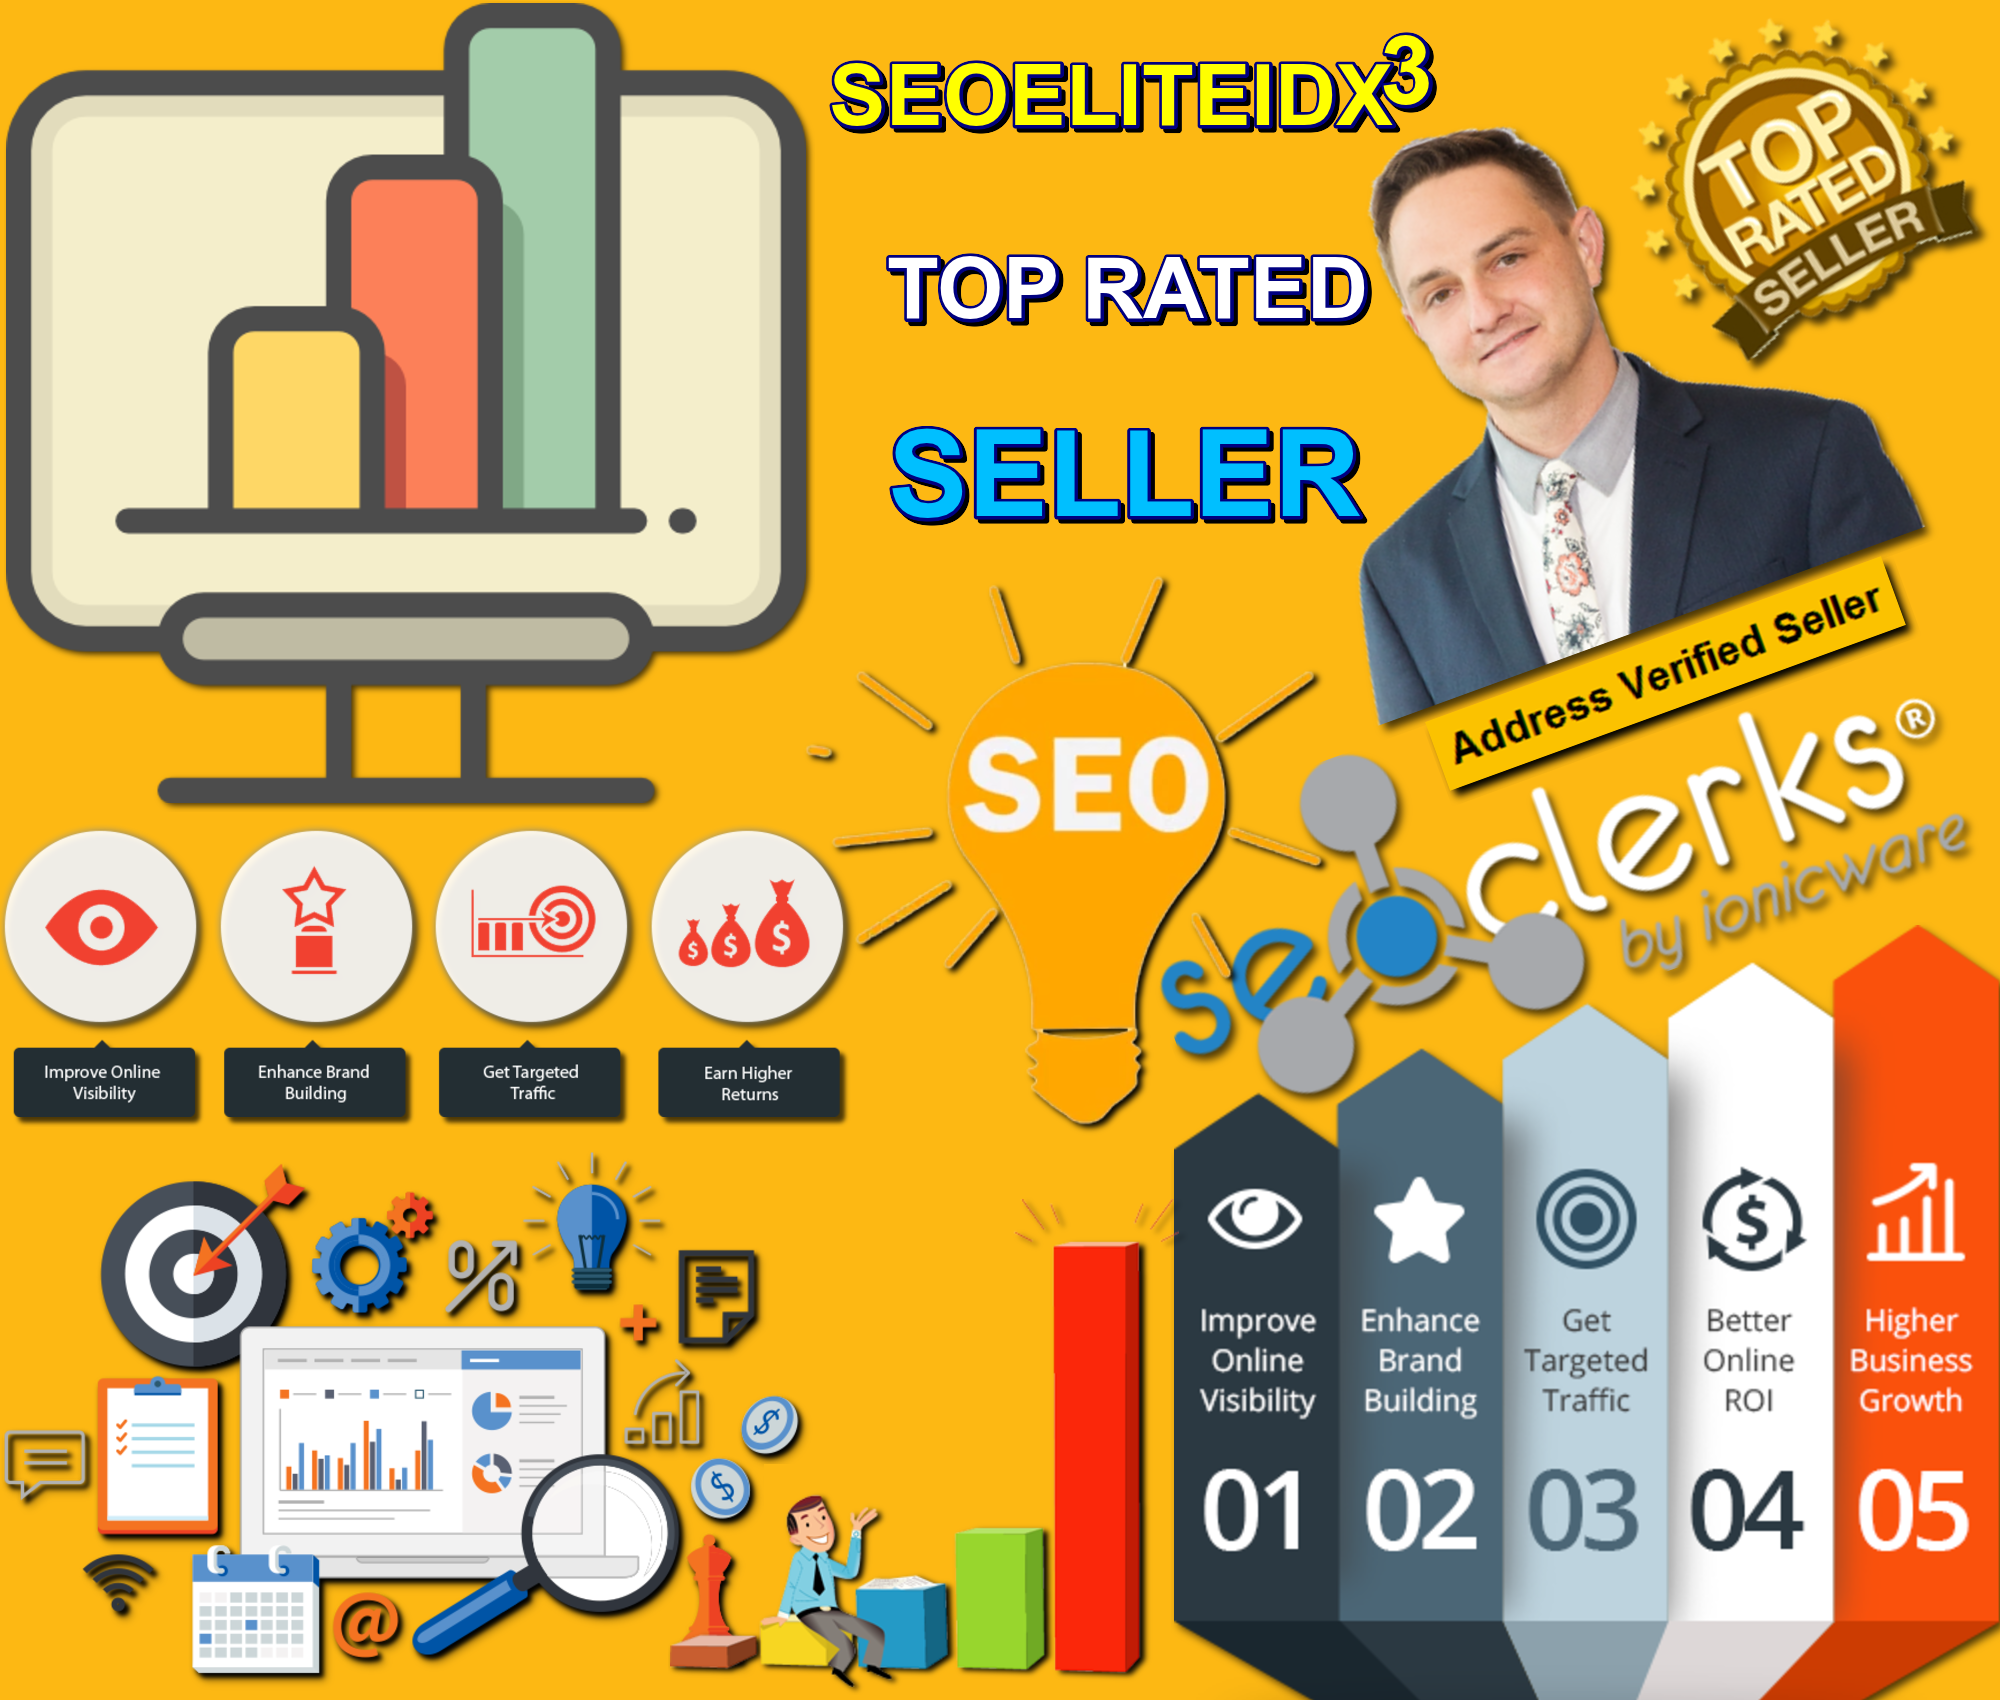 Provide You 1 Million Visitors Worldwide USA Website Social Media Marketing SEO Traffic Boost Help To Ranking 1st Page On Google Guaranteed